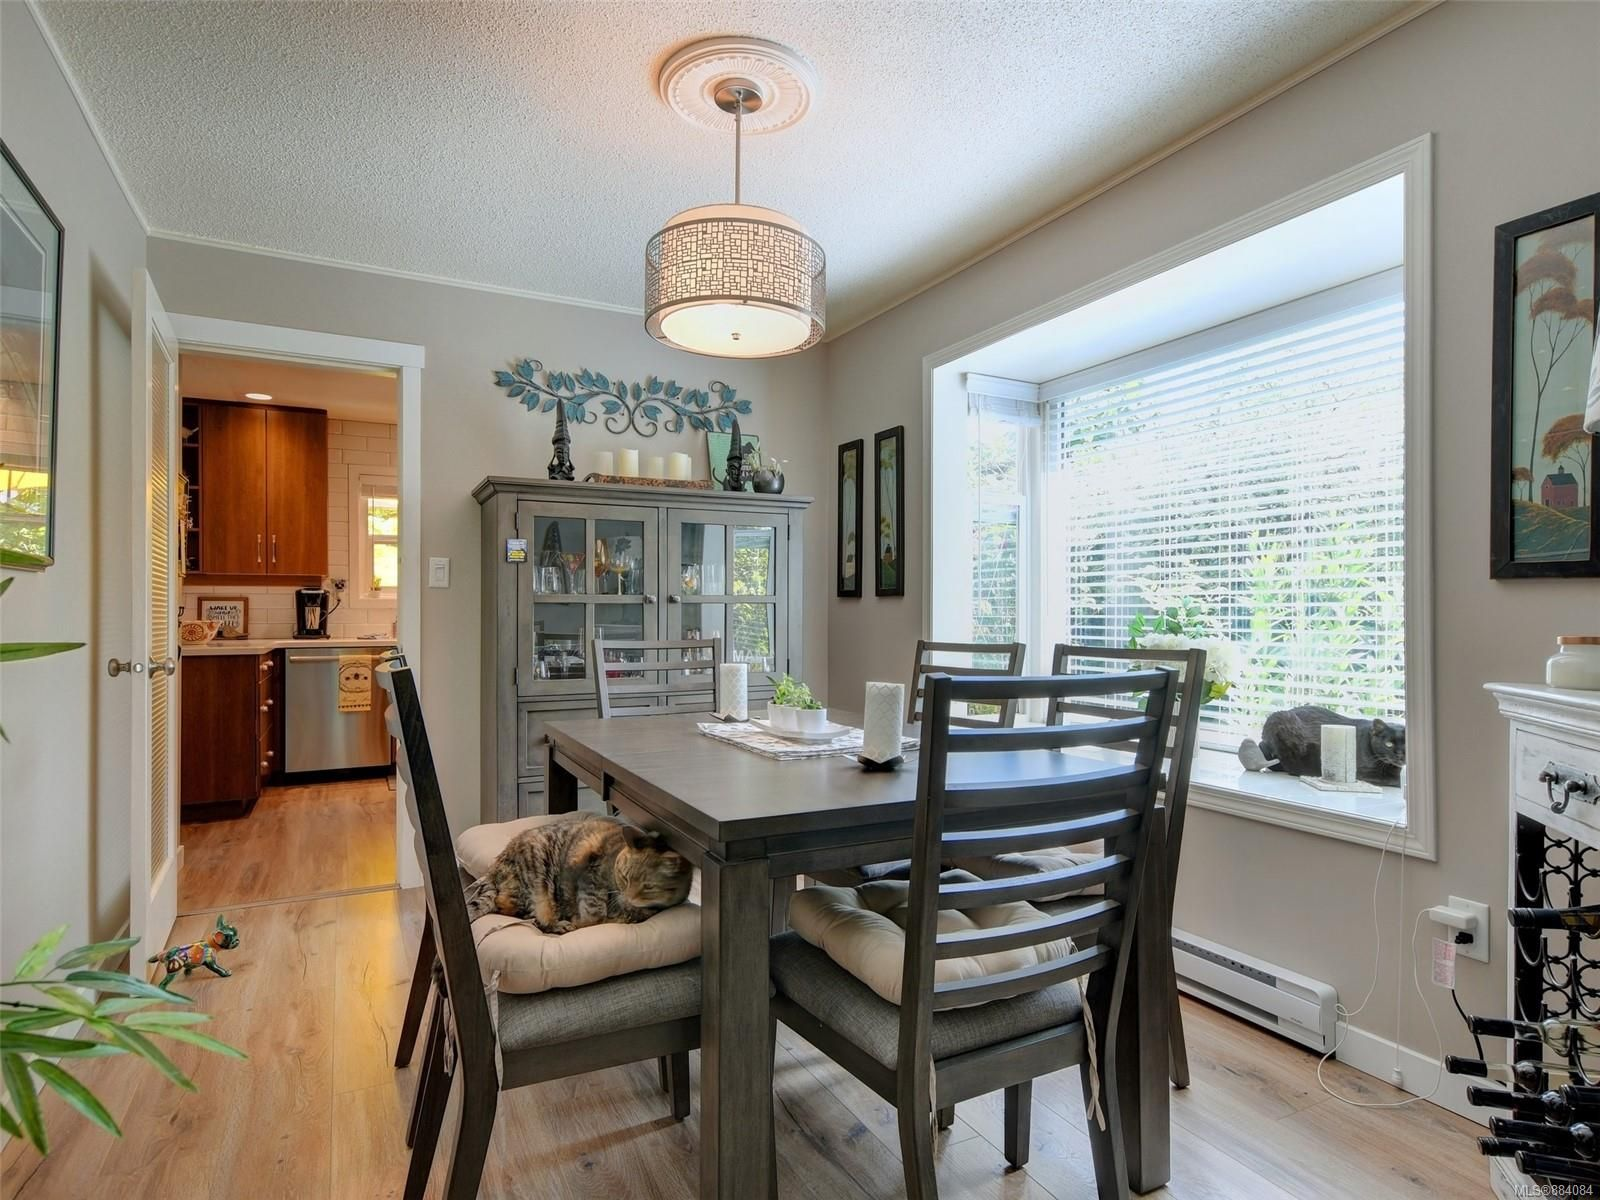 Photo 4: Photos: 6555 Country Rd in : Sk Sooke Vill Core House for sale (Sooke)  : MLS®# 884084